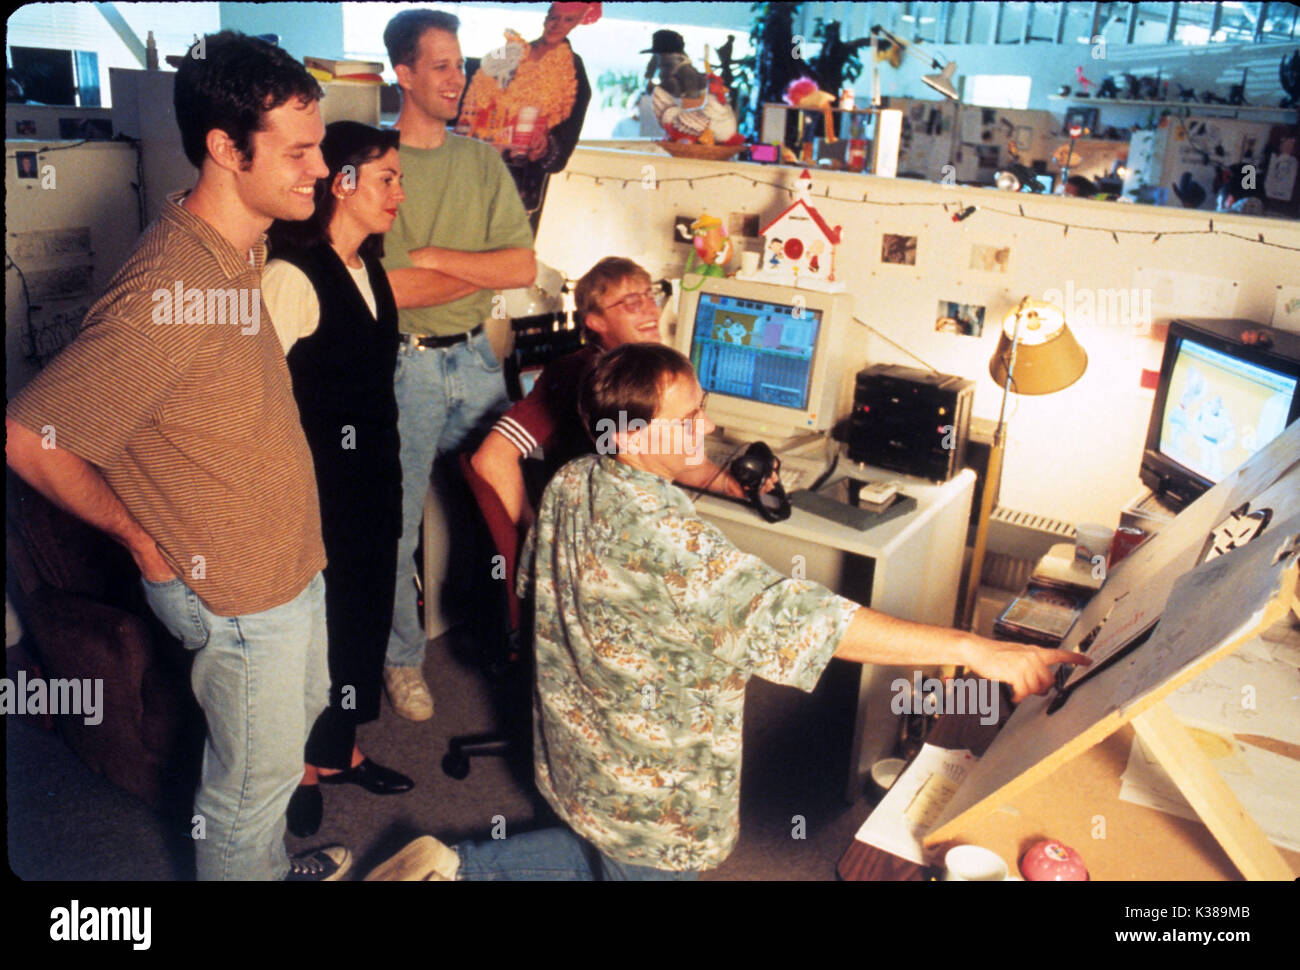 TOY STORY PIXAR/WALT DISNEY FI ANIMATION CG PICTURE FROM THE RONALD GRANT ARCHIVE TOY STORY PIXAR/WALT DISNEY FI ANIMATION CG     Date: 1995 - Stock Image